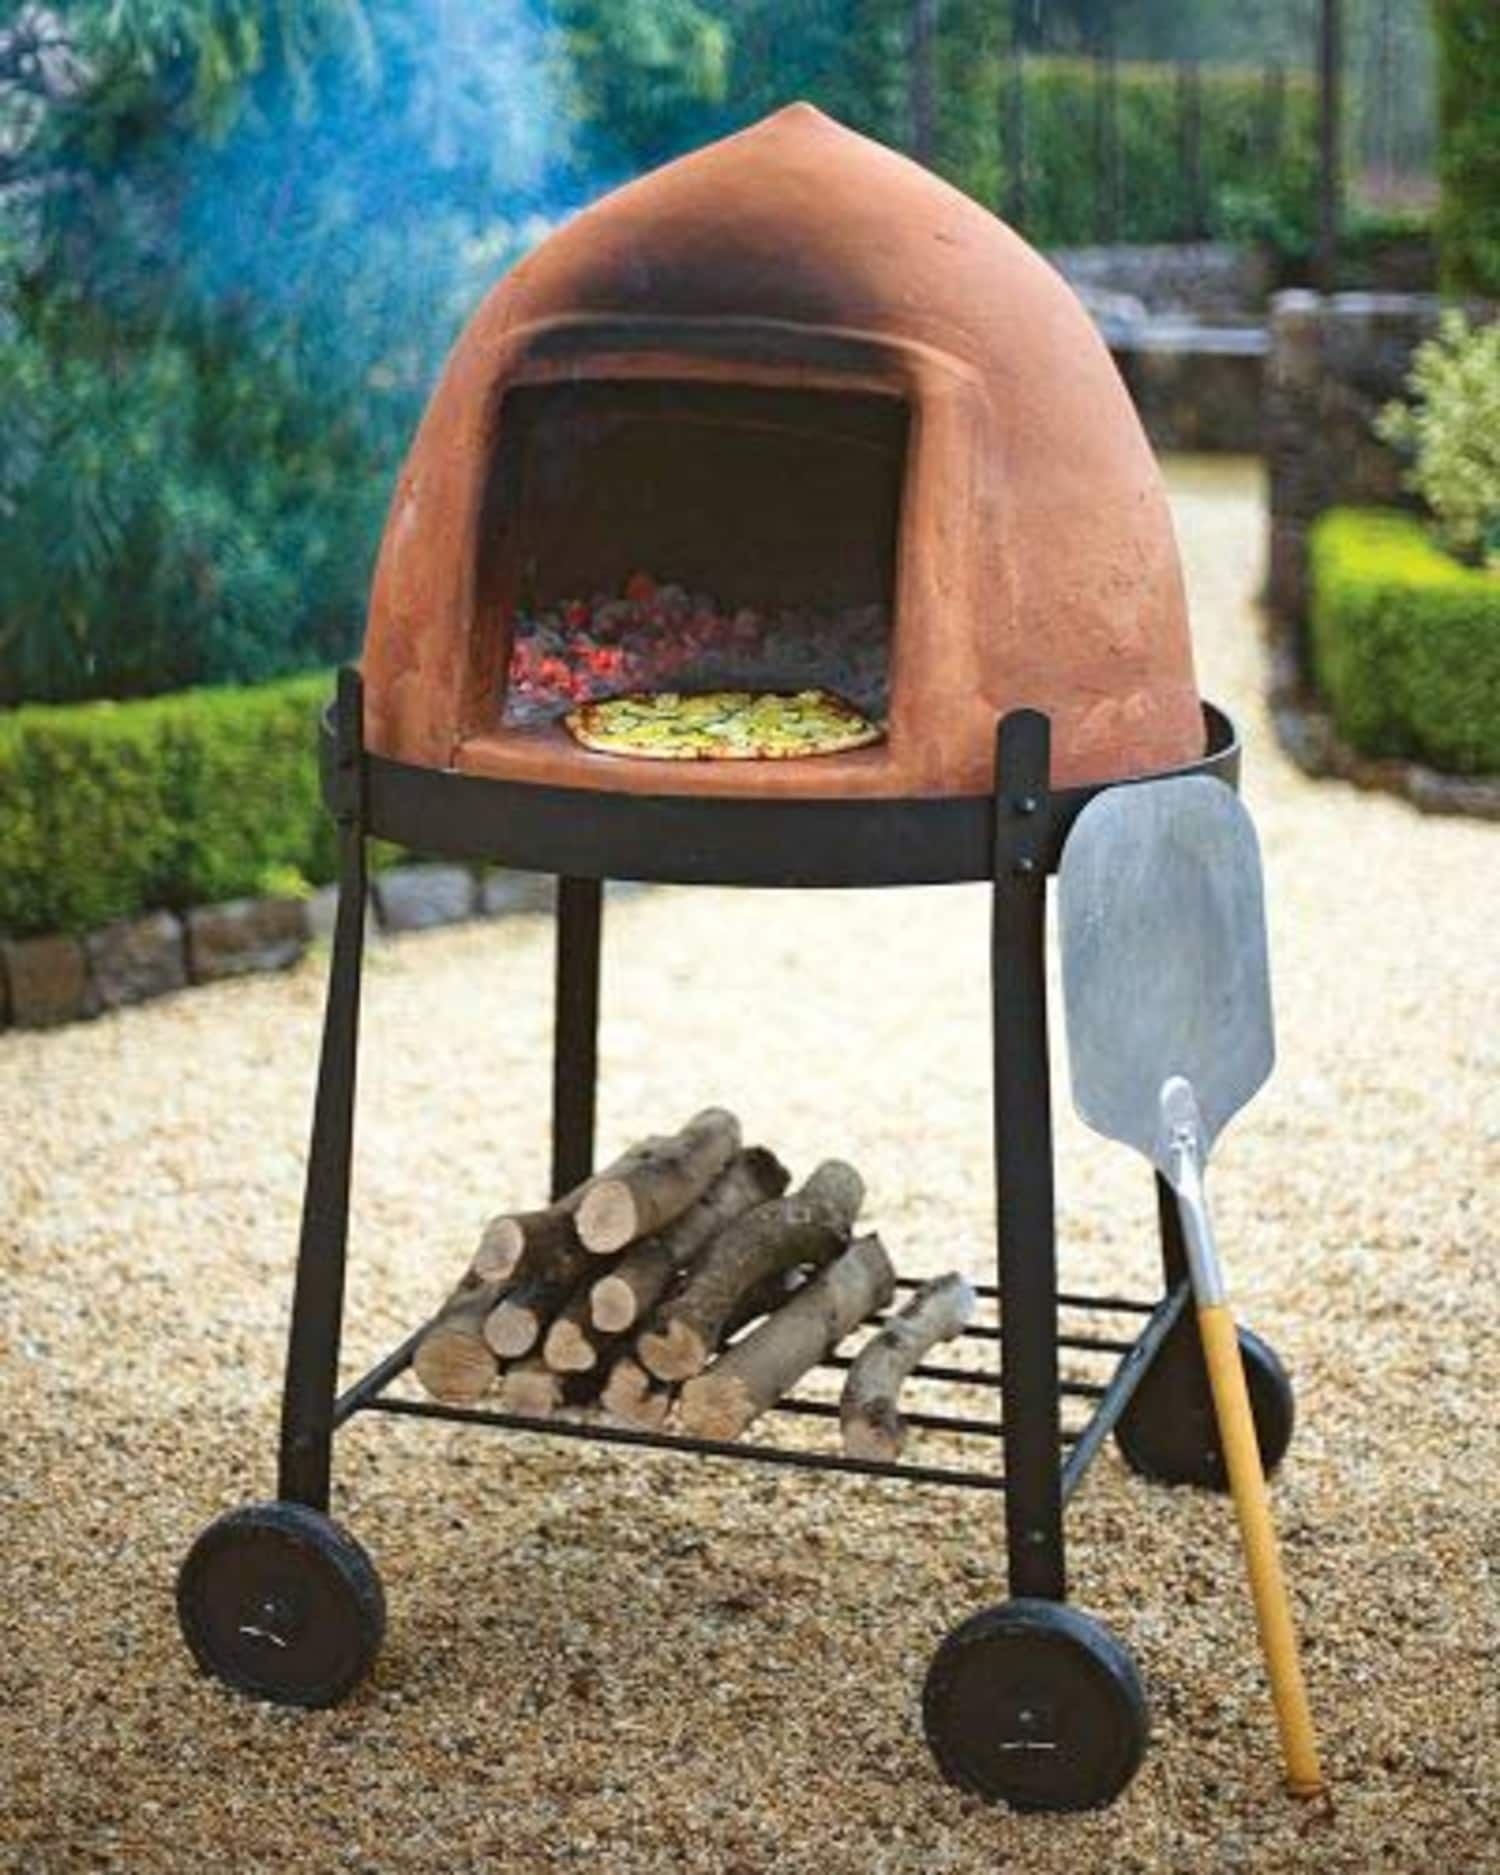 New From Williams Sonoma Beehive Pizza Oven Pizza Oven Outdoor Diy Pizza Oven Pizza Oven